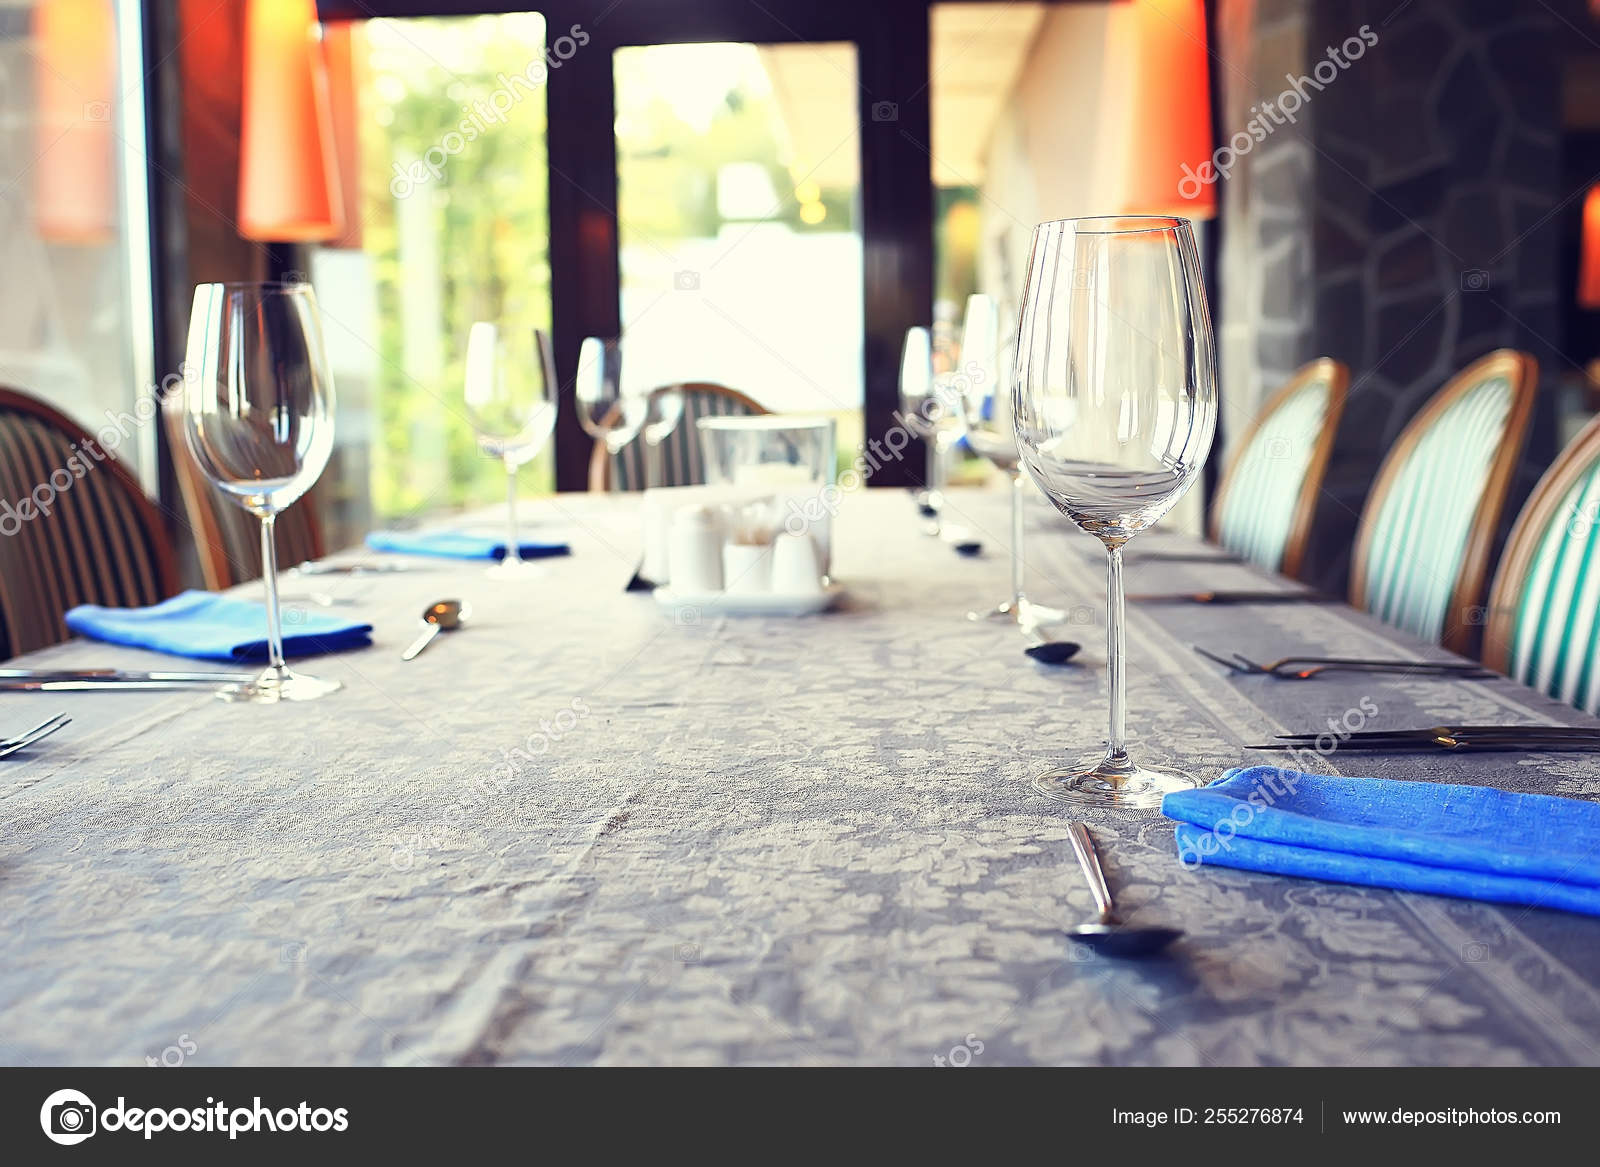 French Restaurant Background Food Concept French Cuisine Serving Cafe Stock Photo C Xload 255276874